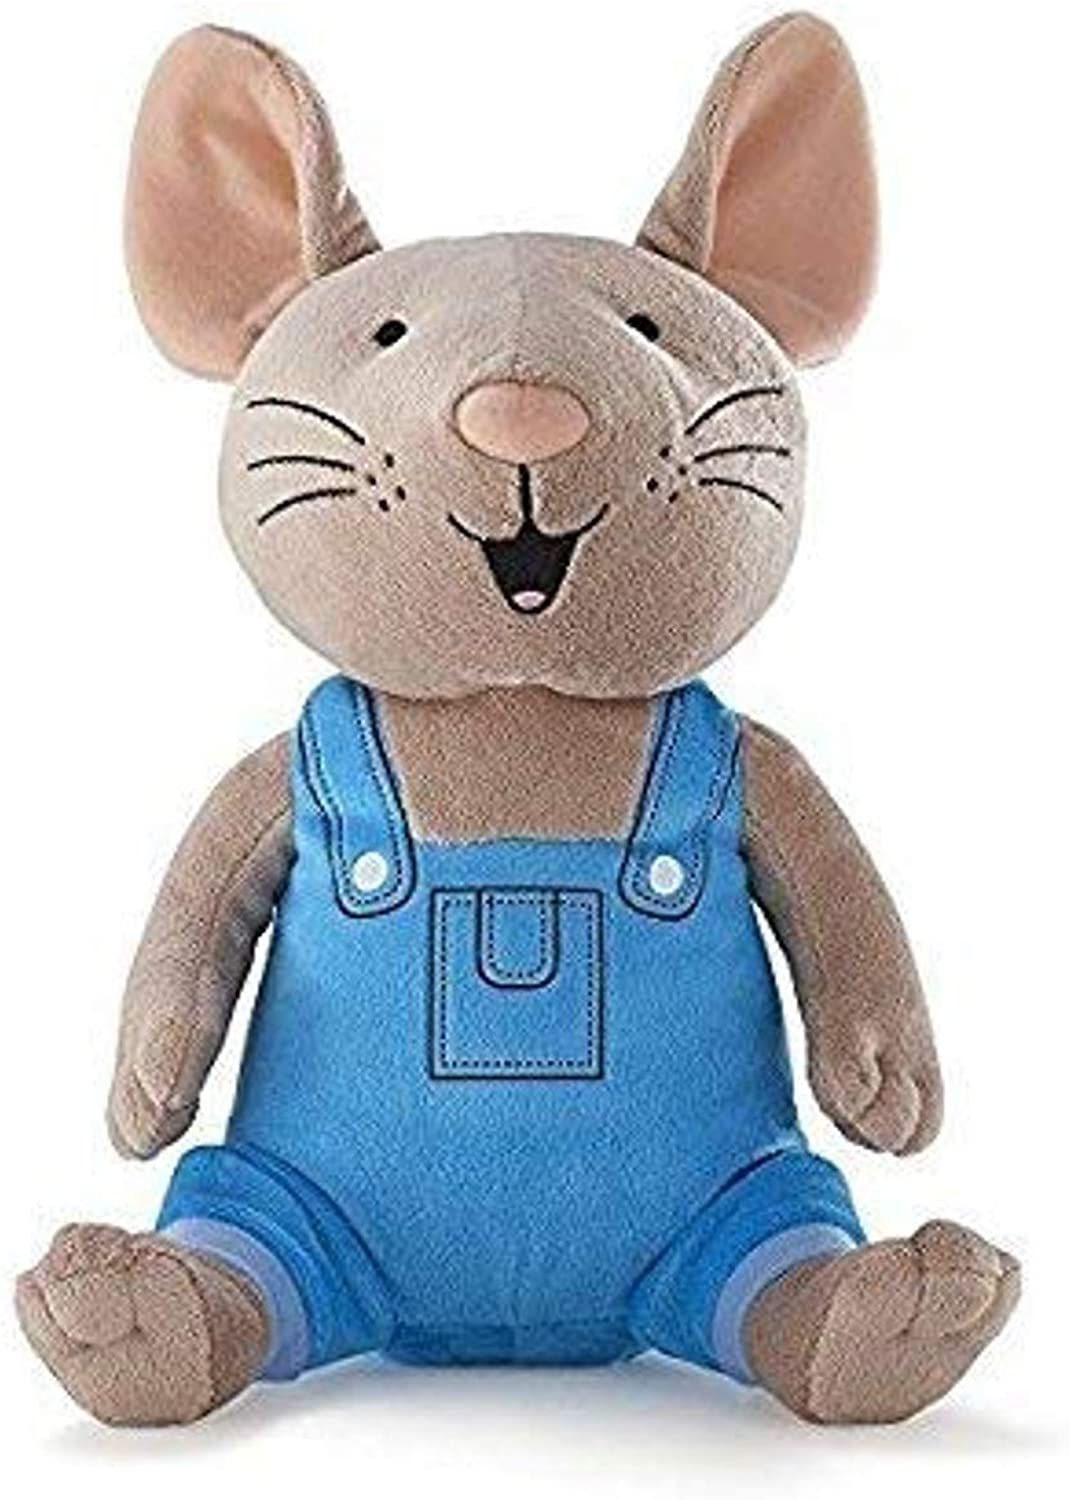 KOHLS CARES 2015 GIVE A MOUSE A COOKIE 12 PLUSH by Kohl's Cares